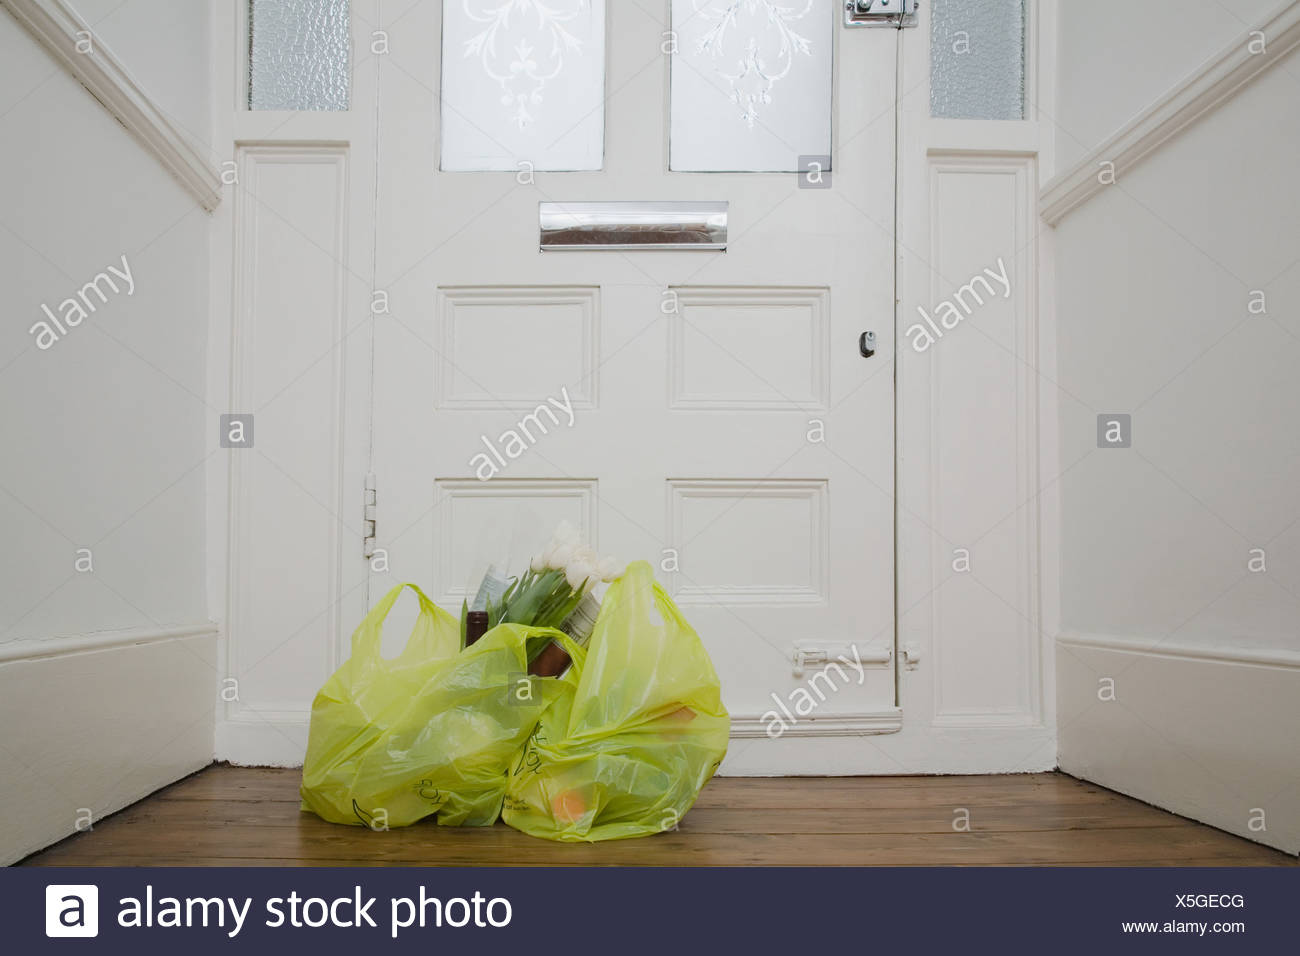 Shopping bags by front door - Stock Image